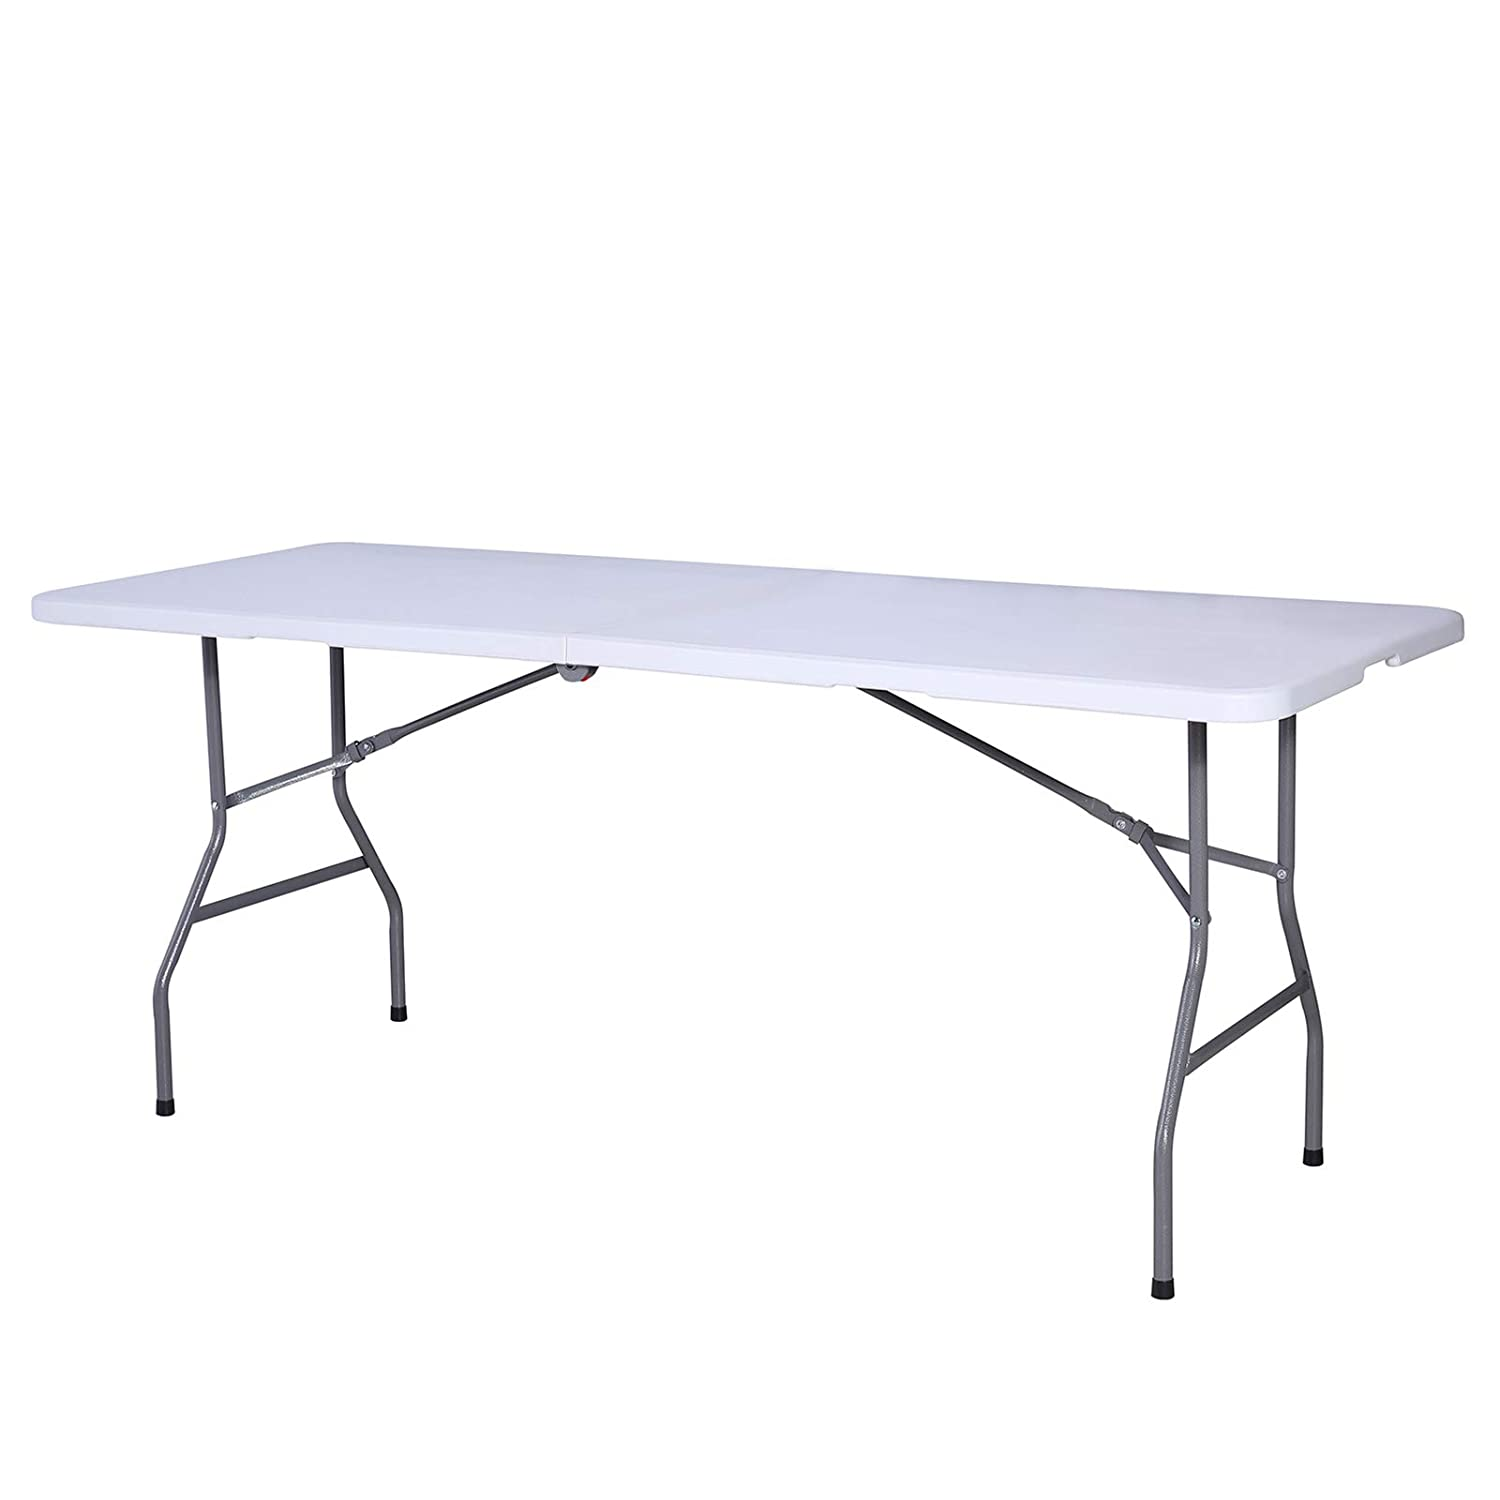 Amazon Com Mecor 6ft Folding Table Portable Plastic Dining Table With Handle And Aluminum Table For Indoor Outdoor Picnic Party Camping White 6 Ft